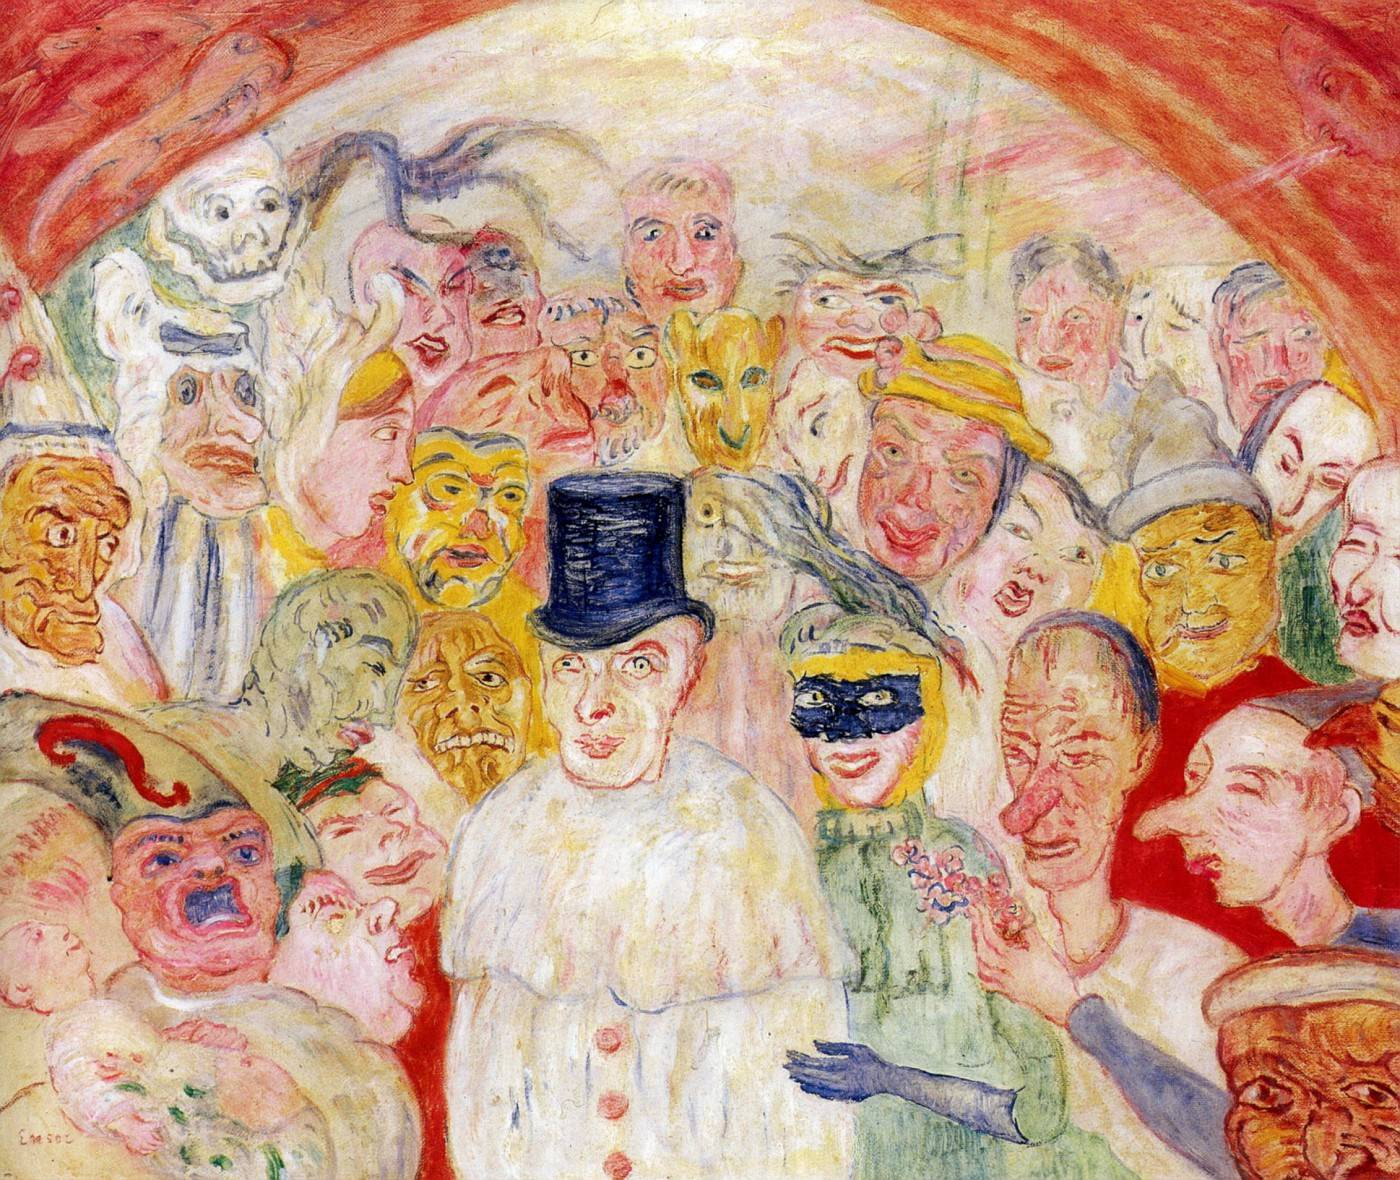 James Ensor, Les Masques Intrigues Intrigued Mask